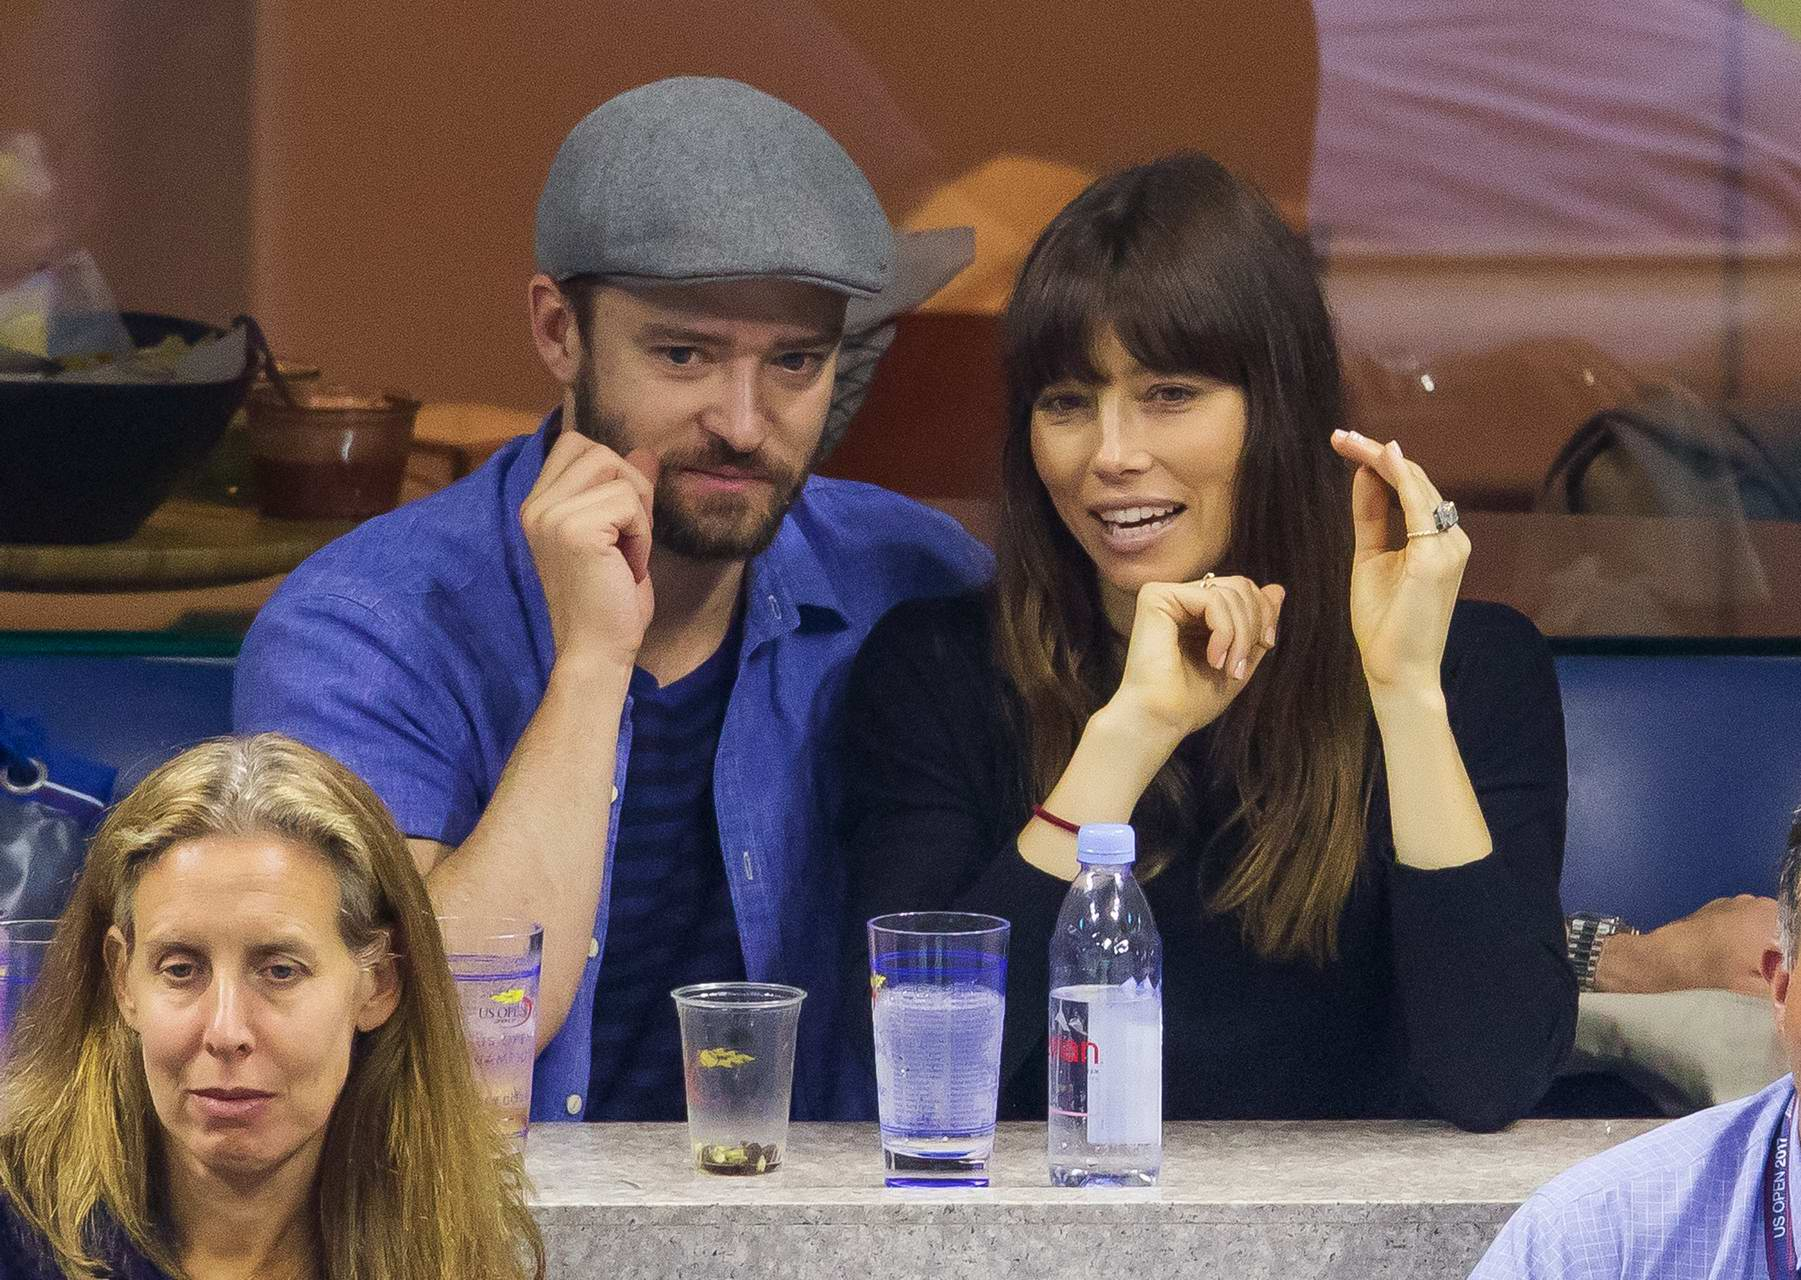 Jessica Biel and Justin Timberlake at Day 6 of the US Open to watch Roger Federer play in New York City